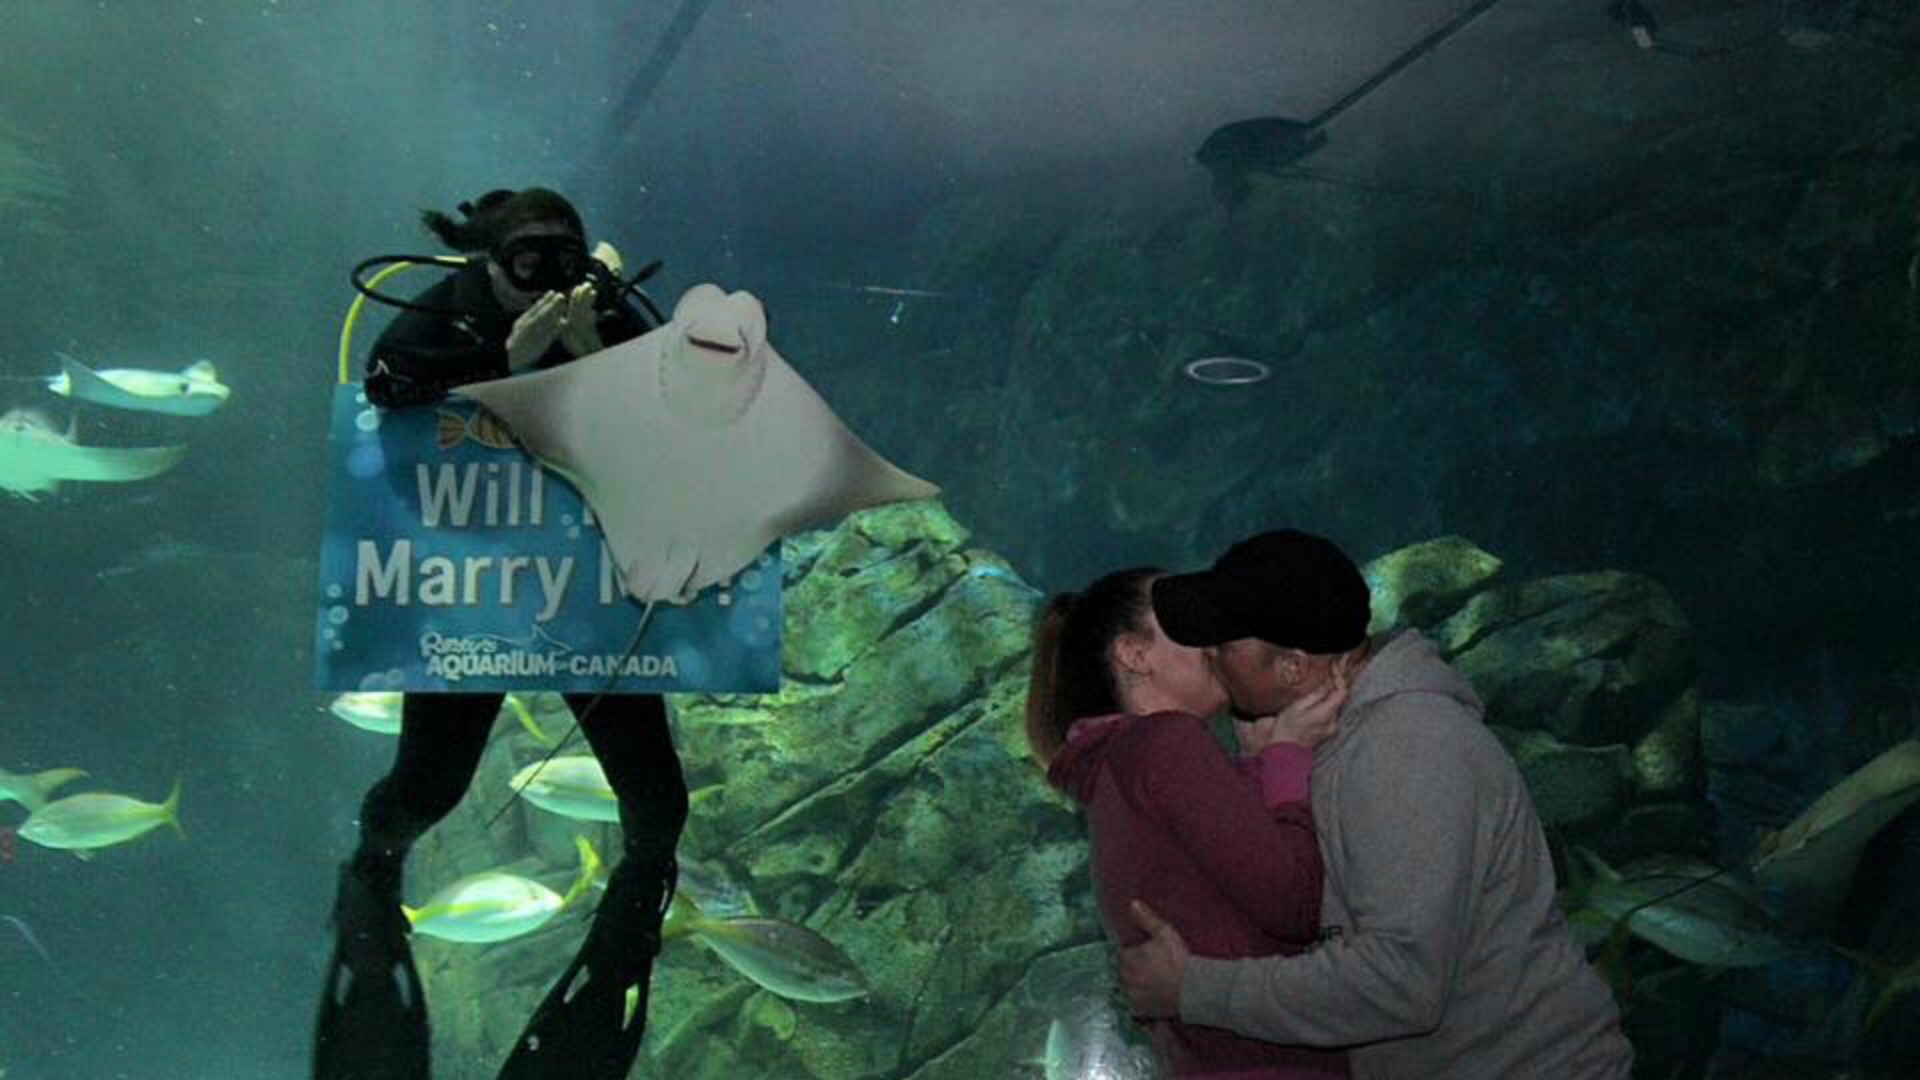 Couple's romantic proposal photobombed by a stingray